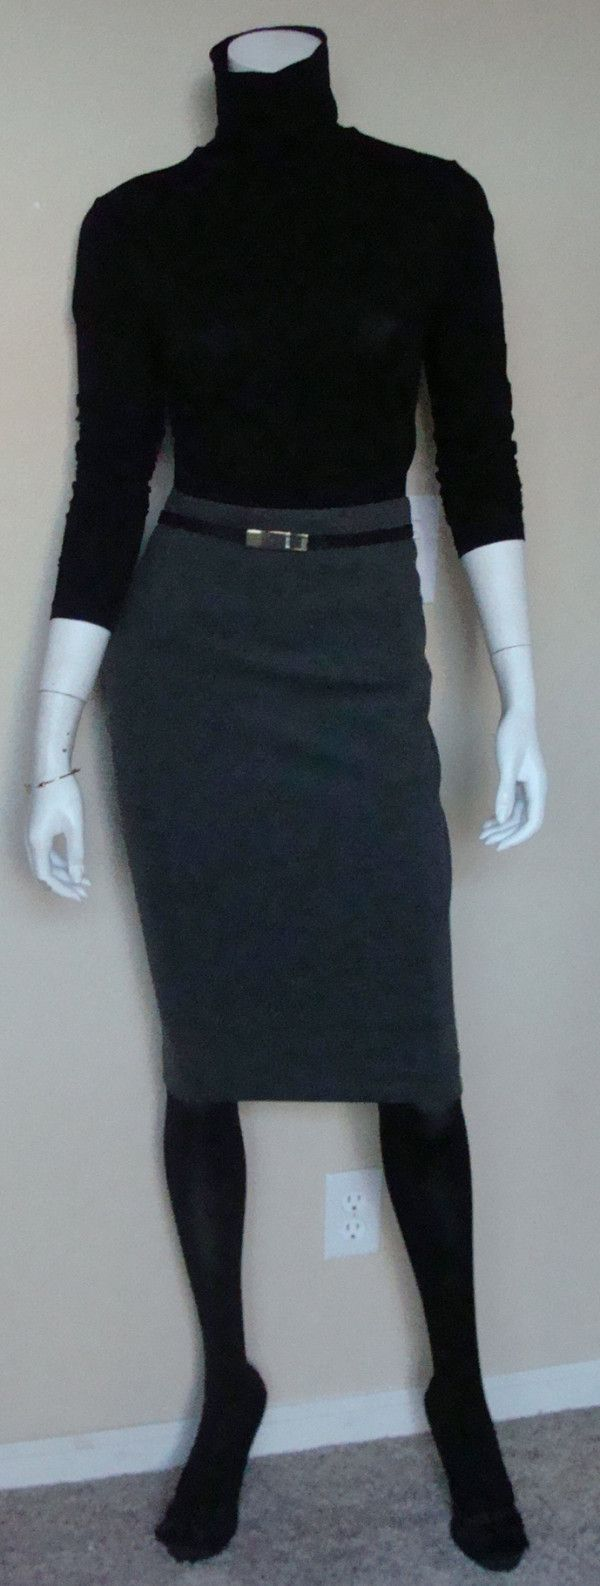 Daily Look: CAbi Fall '13 Seamed Pencil Skirt and Skinny Belt with our vintage Box Front Turtleneck, black tights and whimsical pumps.